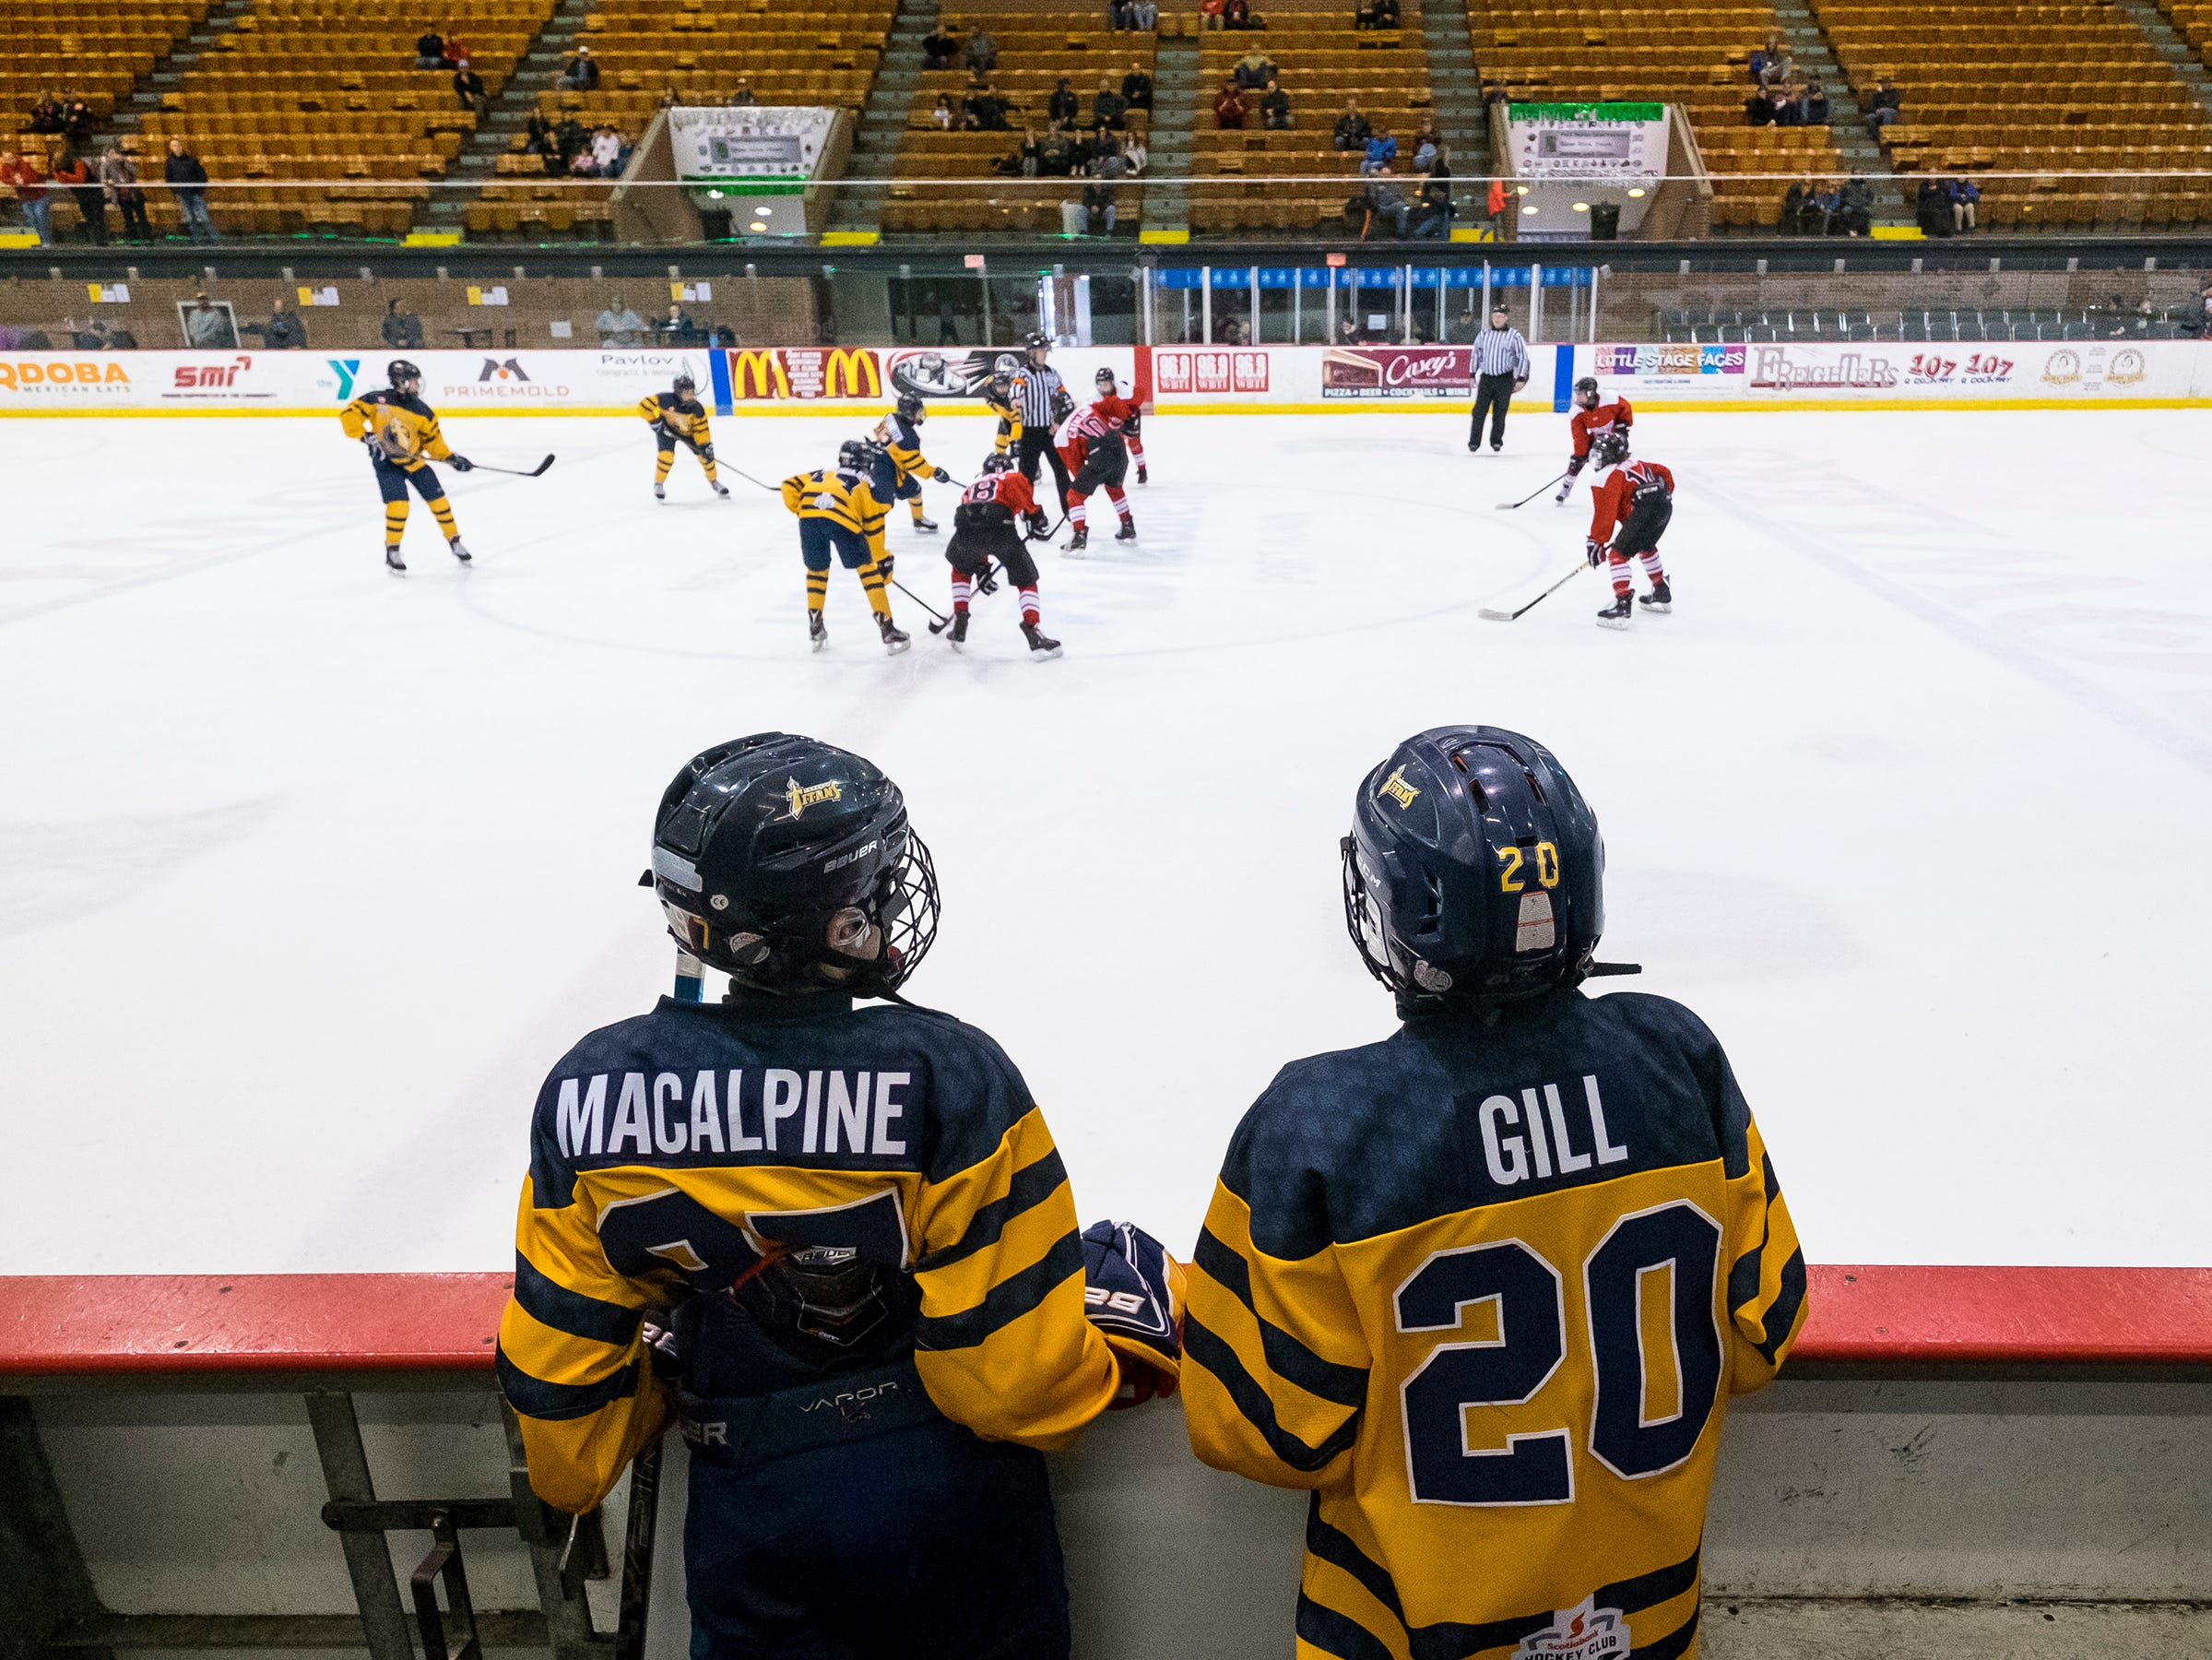 Toronto Titans defenseman Mack MacApline and Hudson Gill watch from the team box during the Silver Stick Finals PAAA Championship match against Chicago Fury Sunday, Jan. 6, 2019 at McMorran Arena.